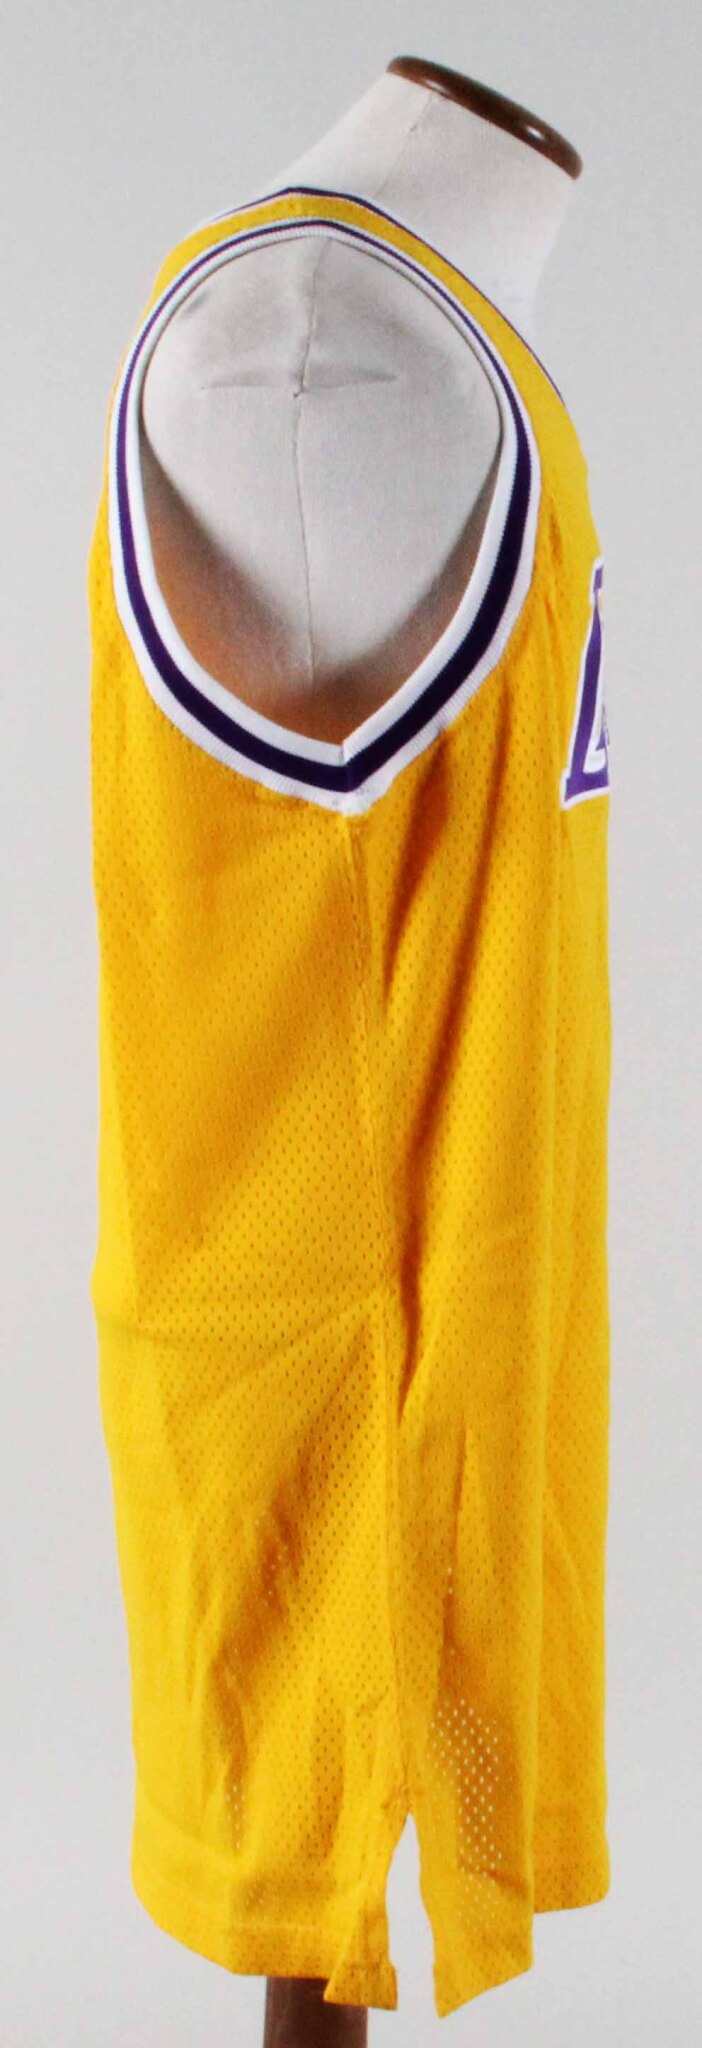 dddf958db 1996-97 Kobe Bryant Game-Worn Jersey Lakers Grade  11 20 COA 100% Authentic  Team